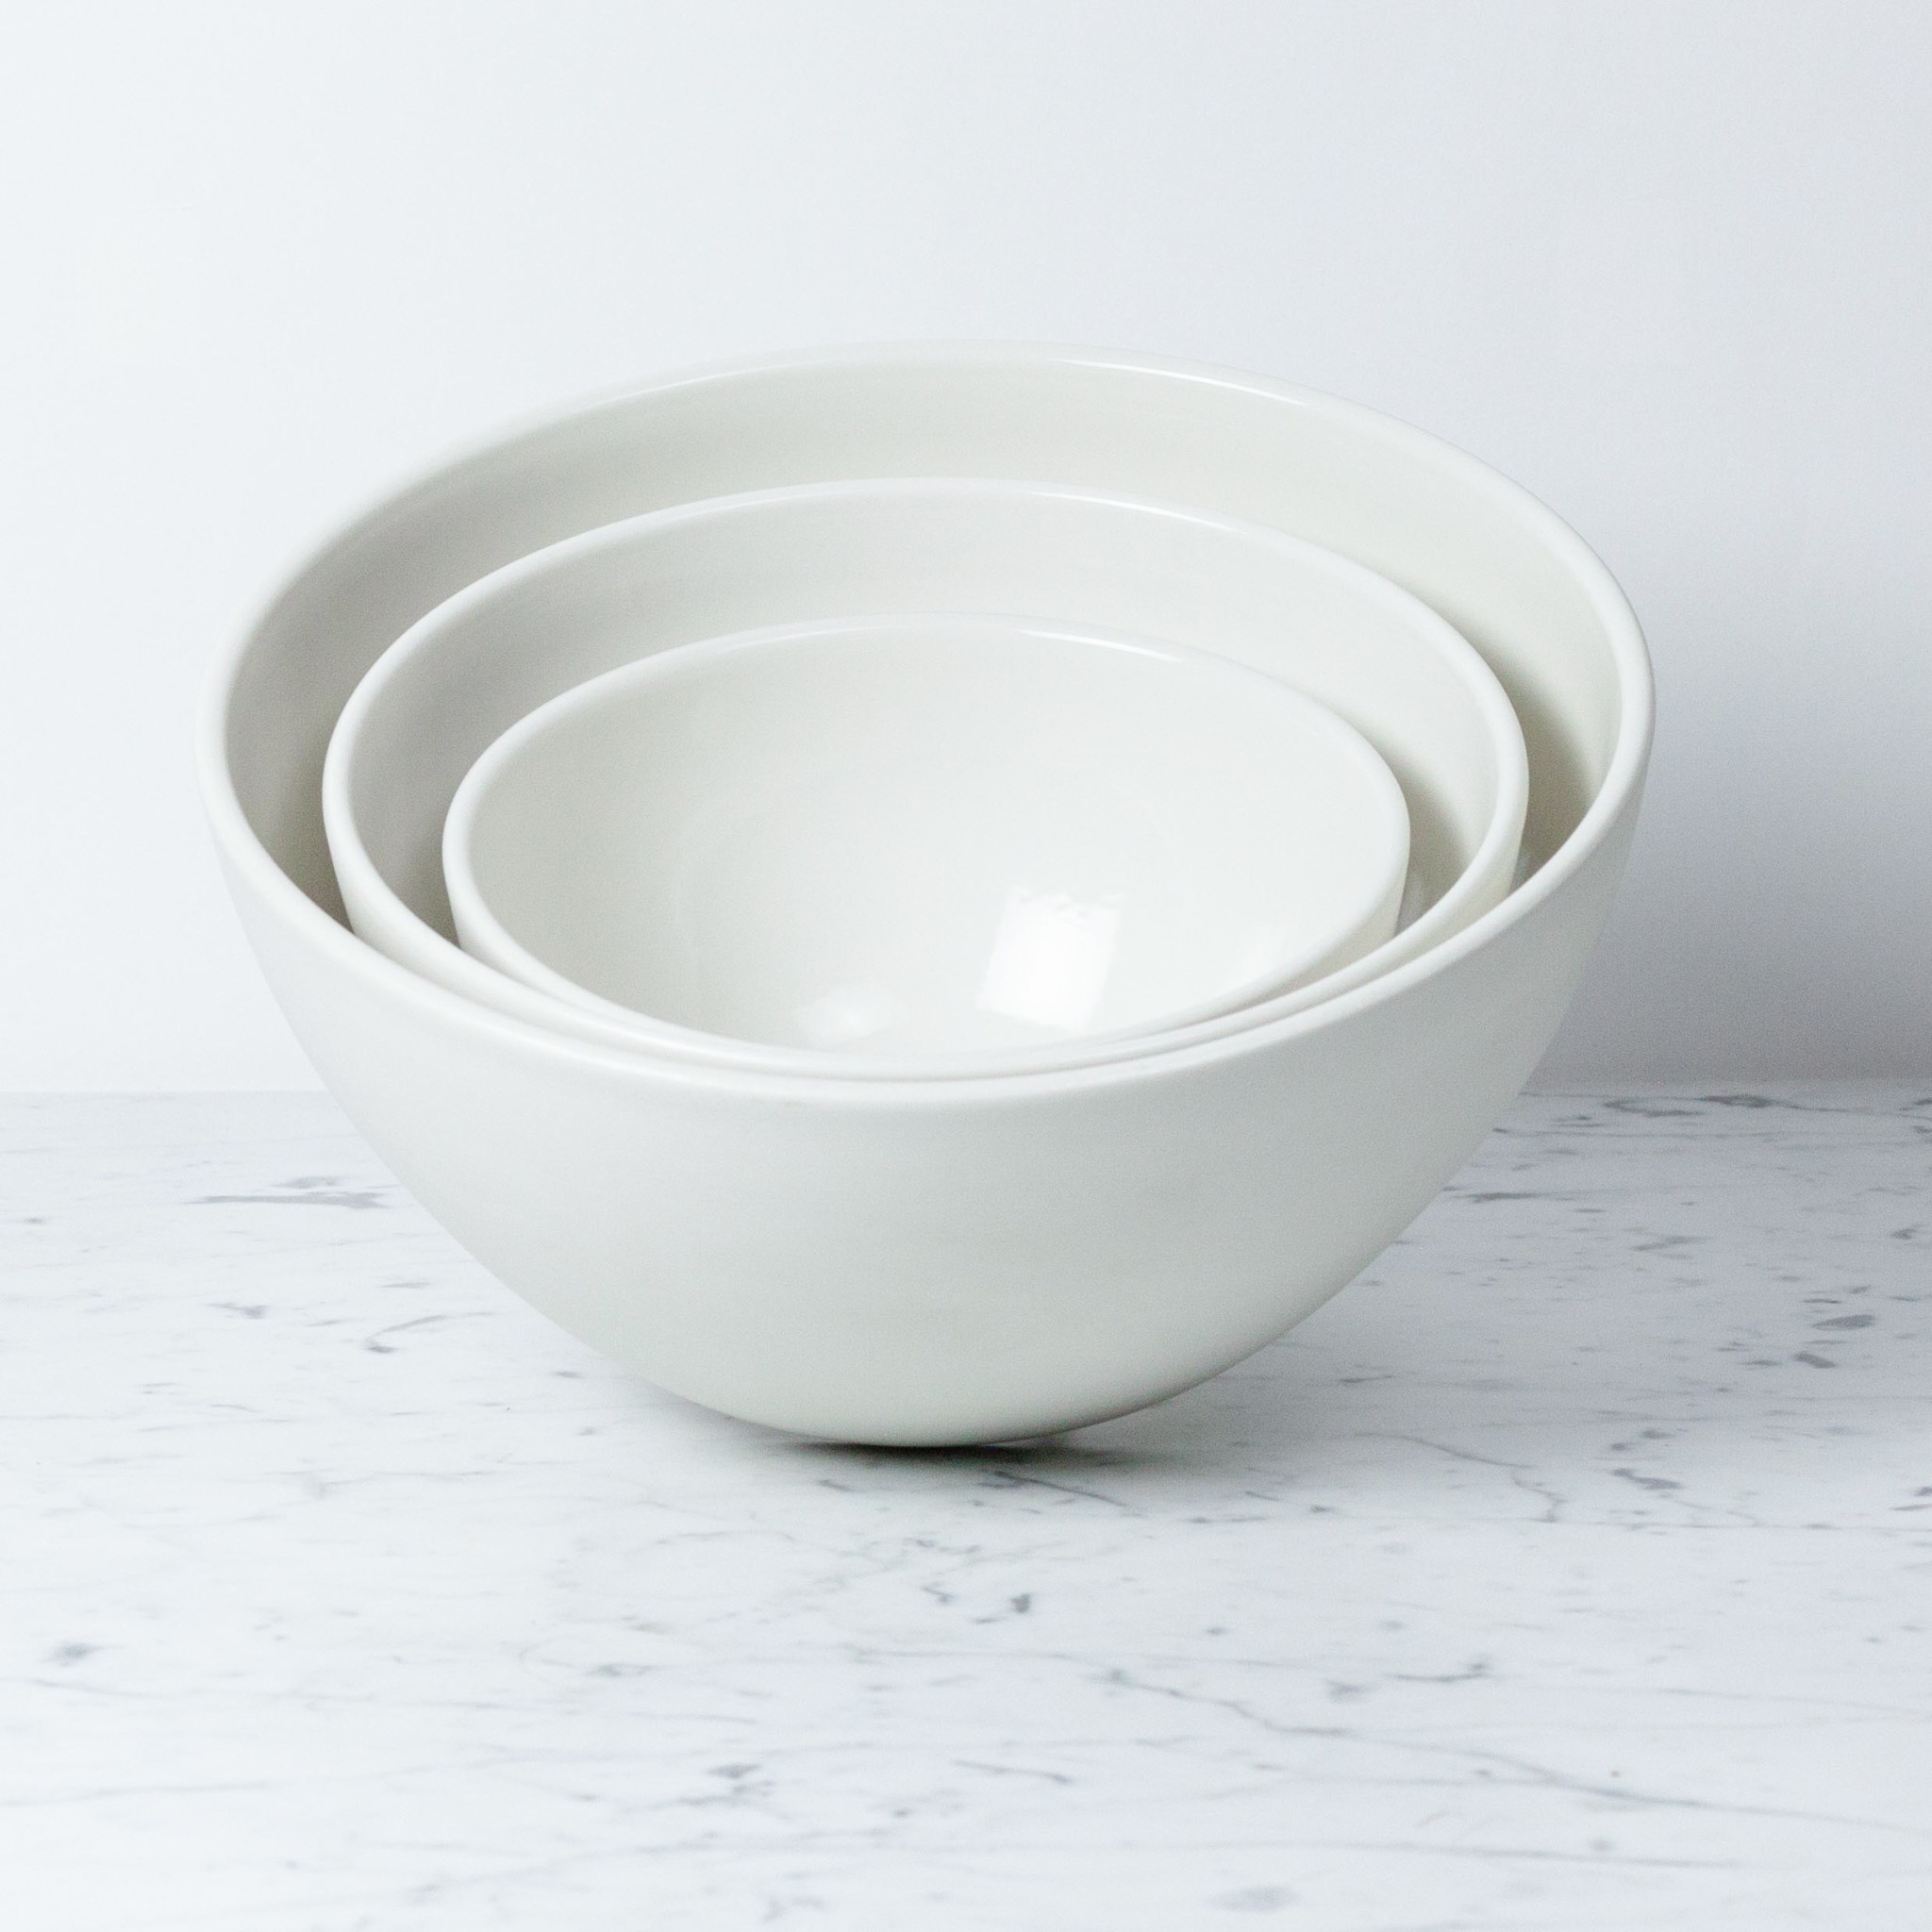 John Julian John Julian Mixing Bowl Plain - Large - 12""